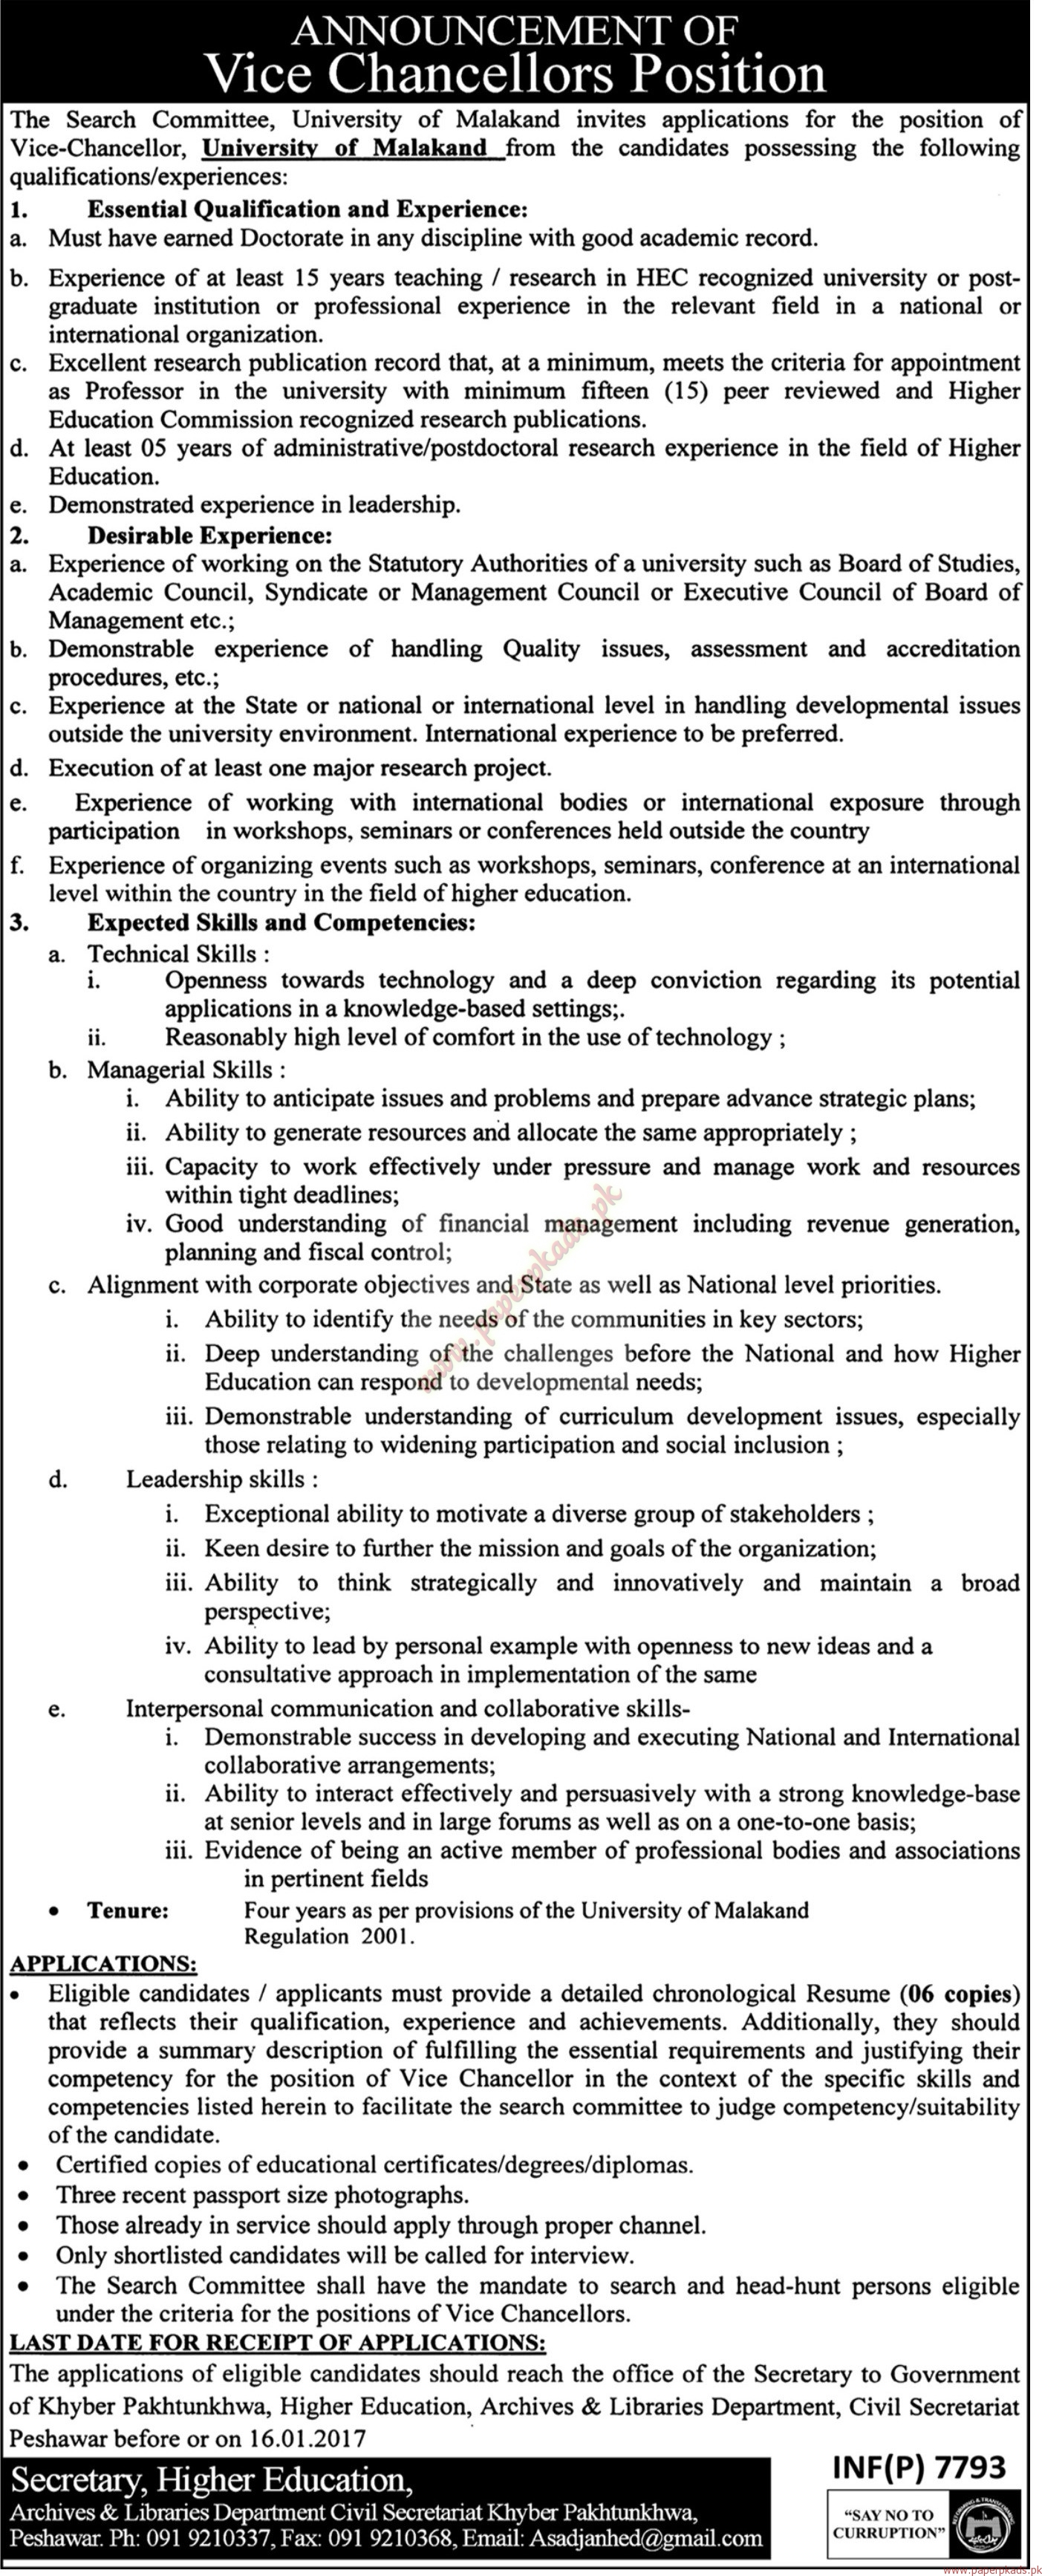 The Search Committee University of Malakand Jobs - Mashriq Jobs ads 31 December 2016